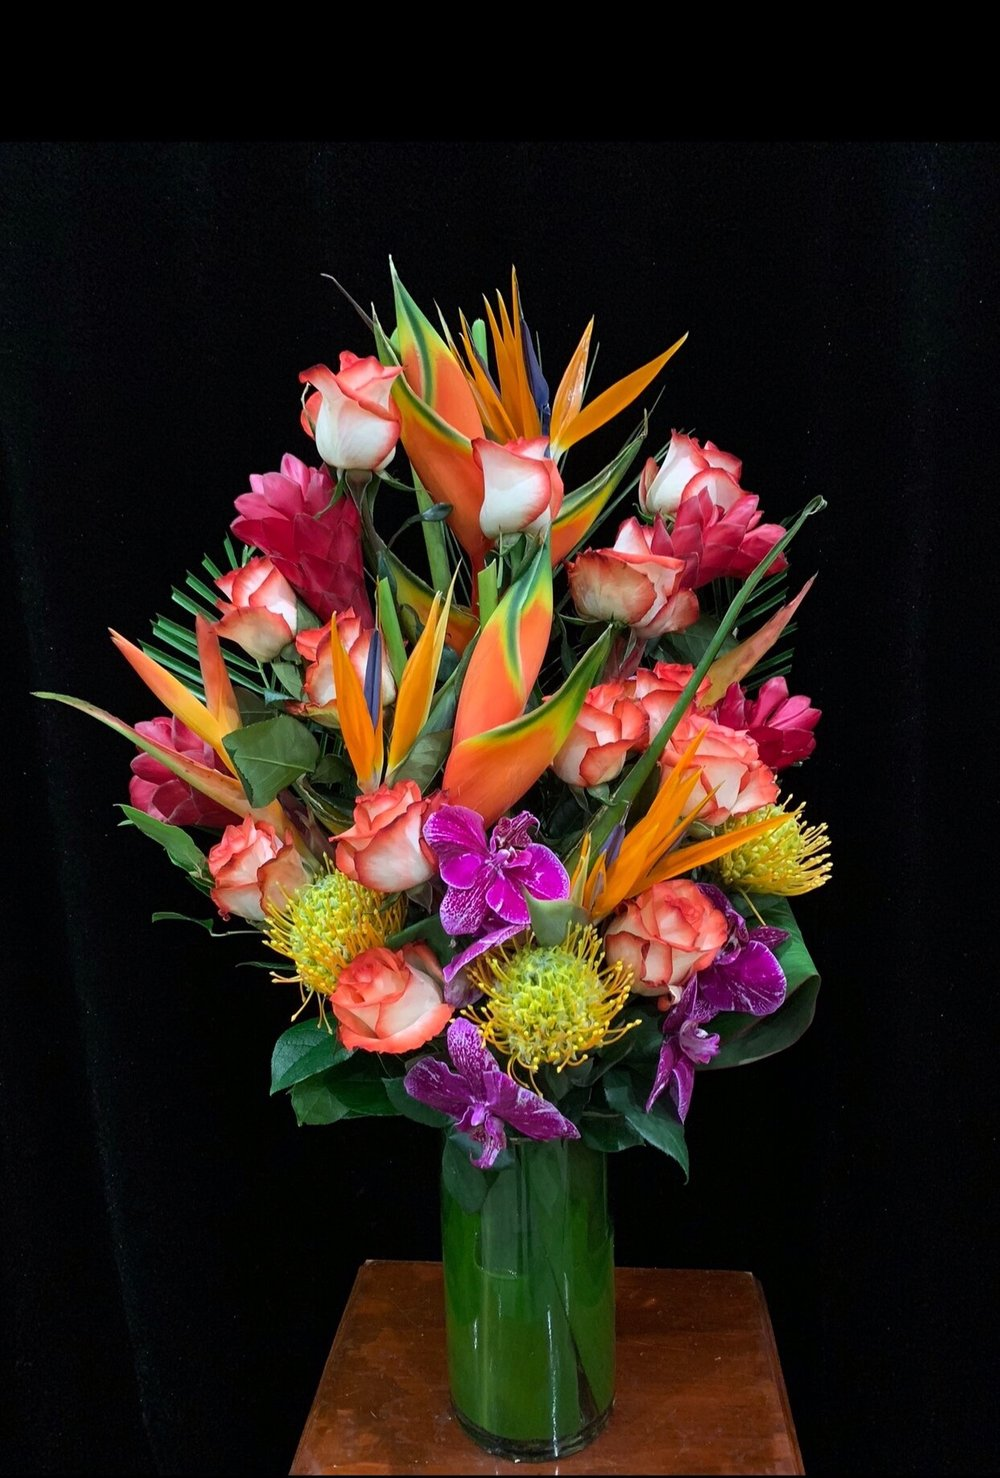 C8 heliconia pink ginger green anthuriums yellow calla lilies c8 heliconia pink ginger green anthuriums yellow calla lilies pincushions magenta phalaenopsis orchids one faced mightylinksfo